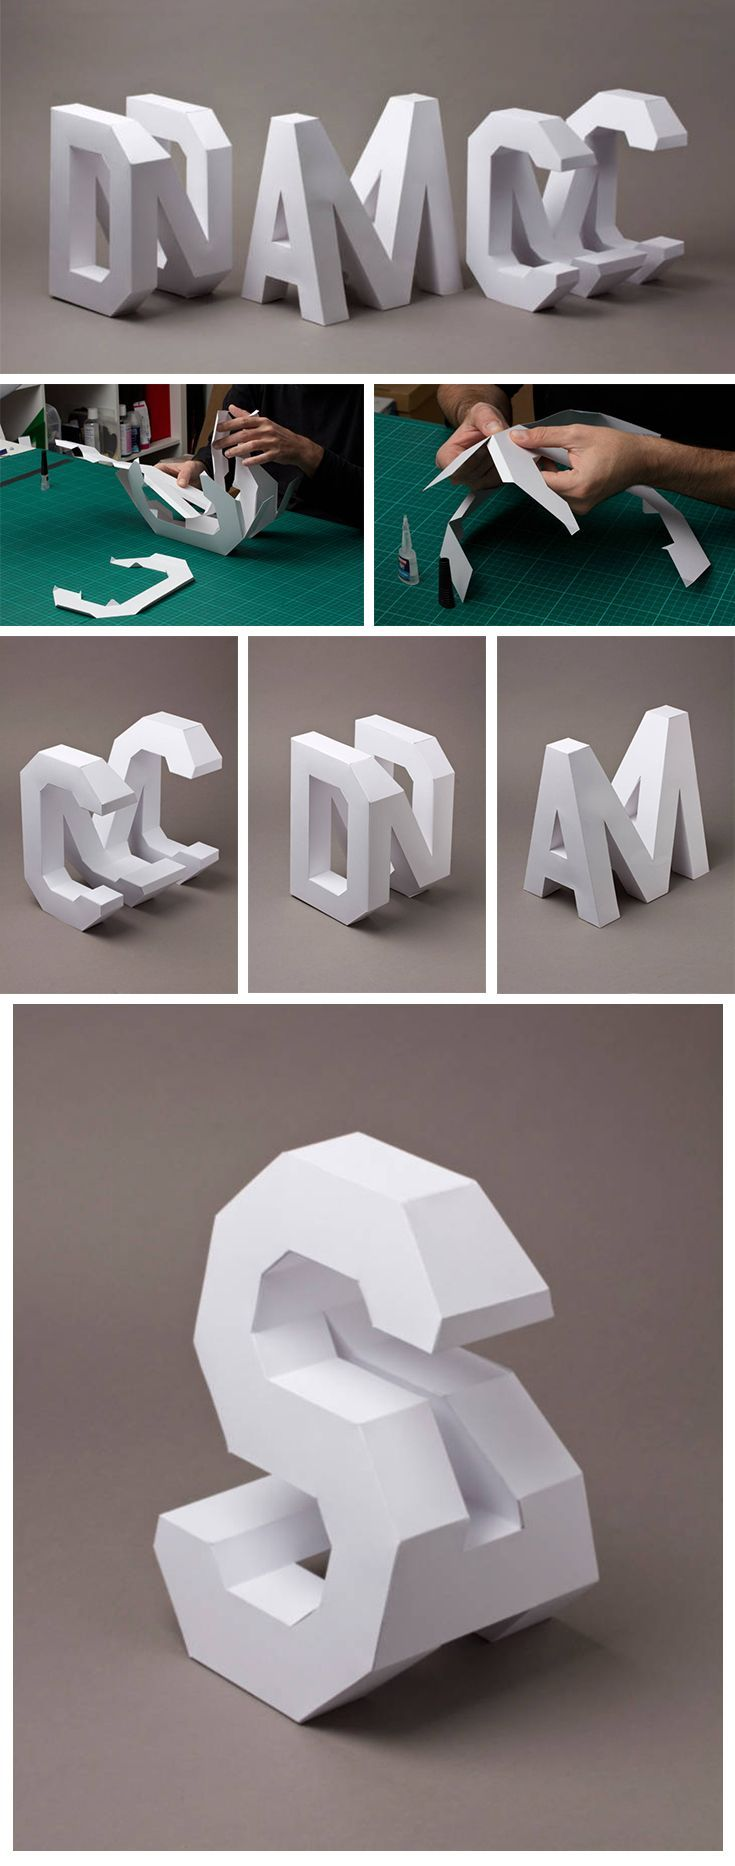 Lo Siento Creates #4D Typography Handcrafted in Paper.